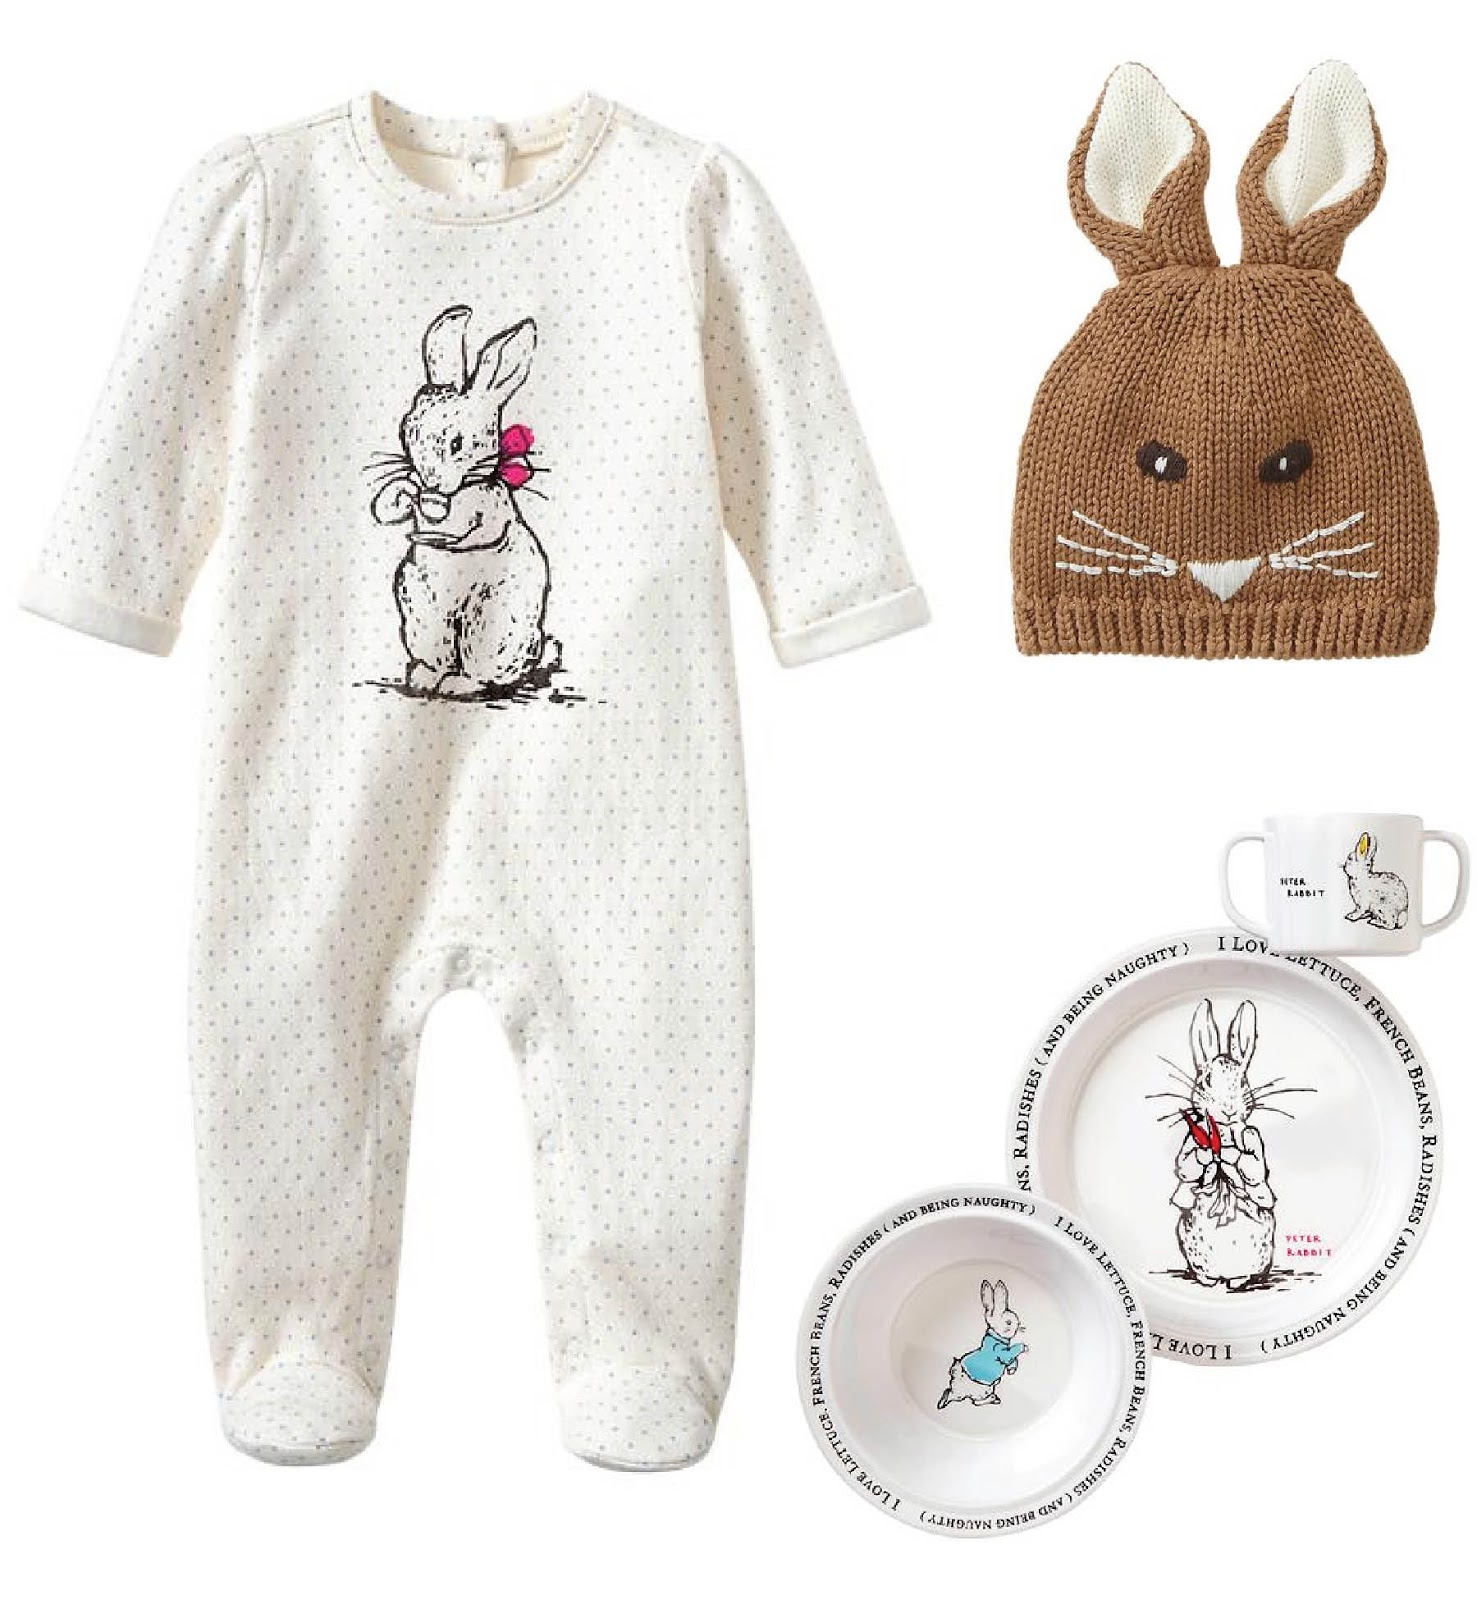 coos & ahhs Fashion Coos Peter Rabbit Collection at the Gap